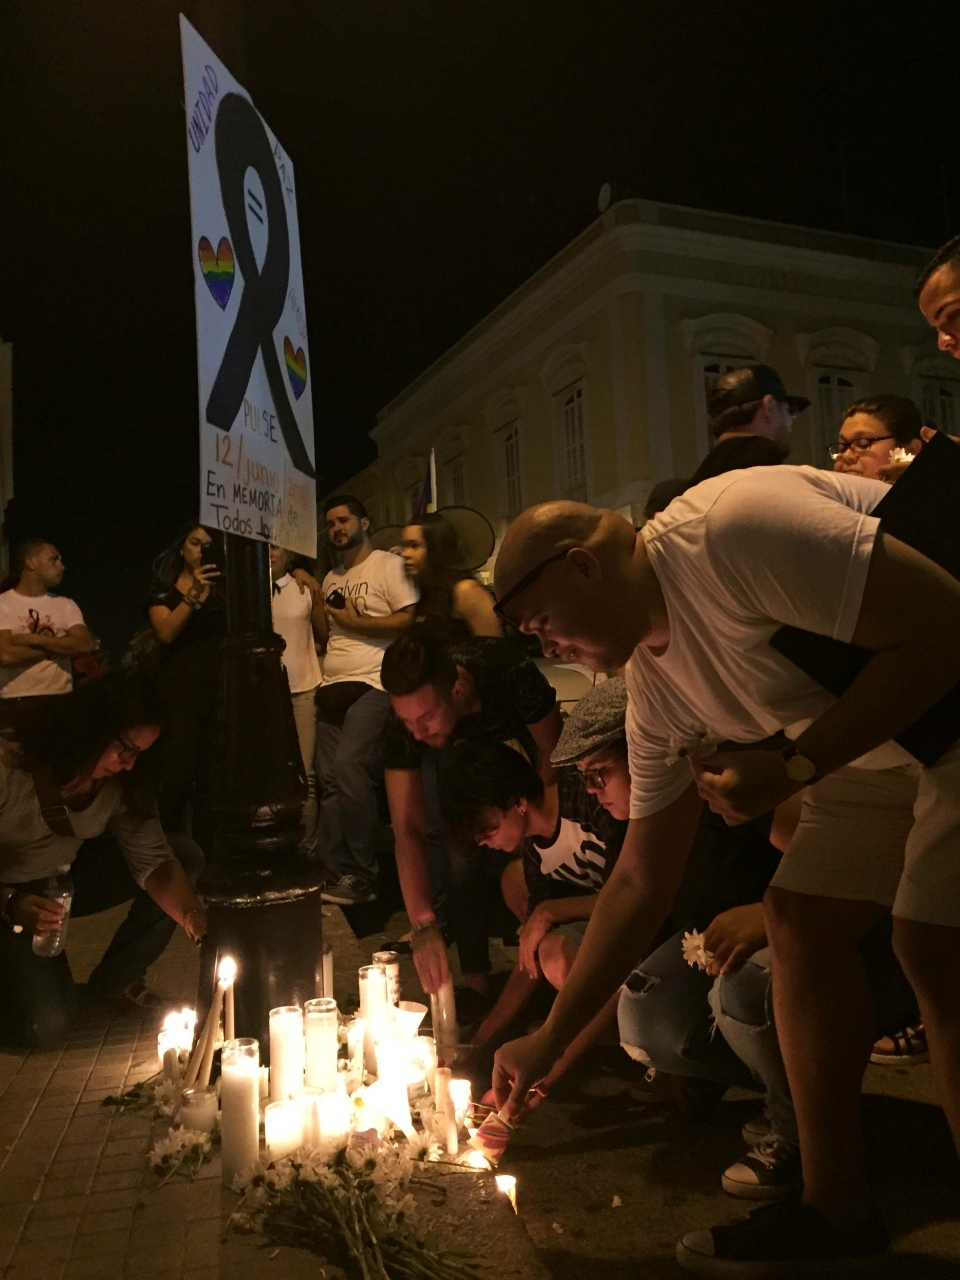 People light candles in Ponce, Puerto Rico, Monday, June 13, 2016, during a vigil for the victims of Sunday's Orlando shootings at a gay nightclub in Florida. (Danica Coto/AP Photo)